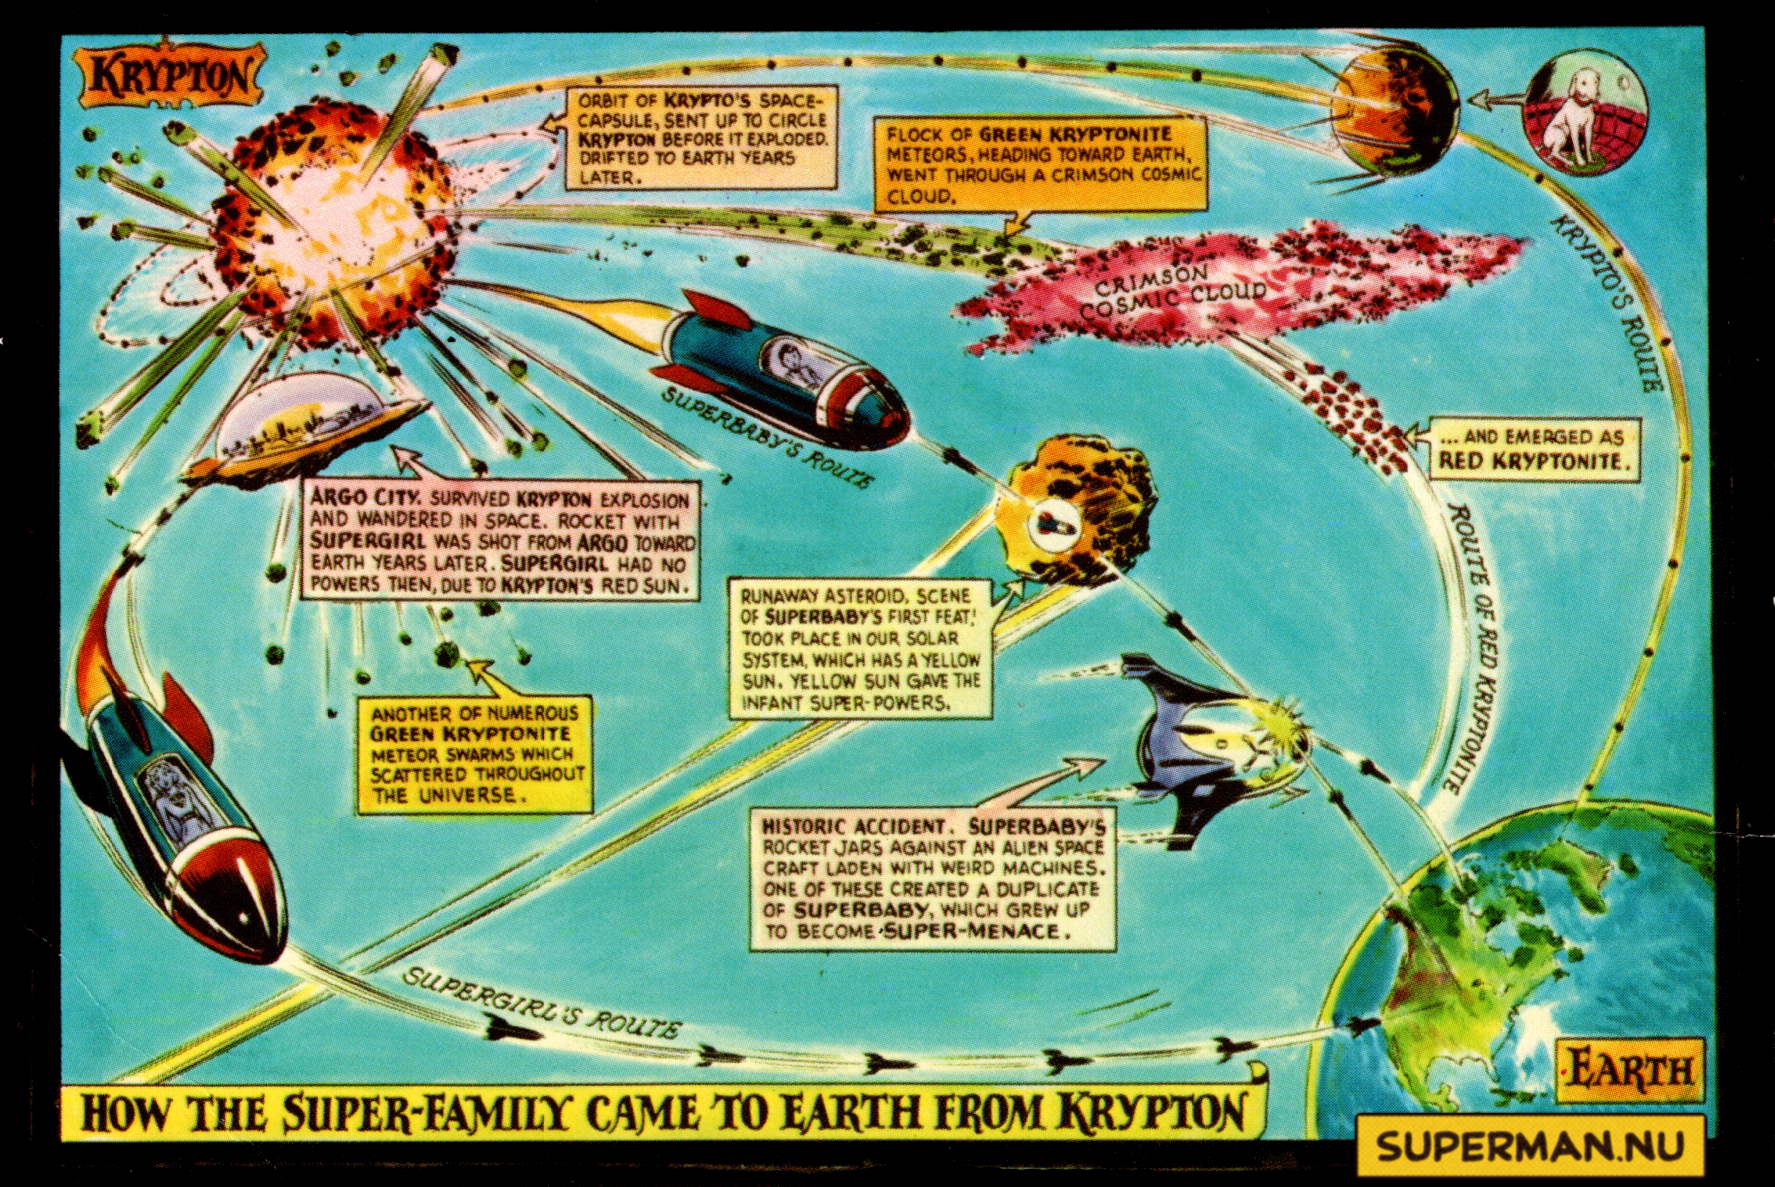 How the Super-Family Came to Earth from Krypton